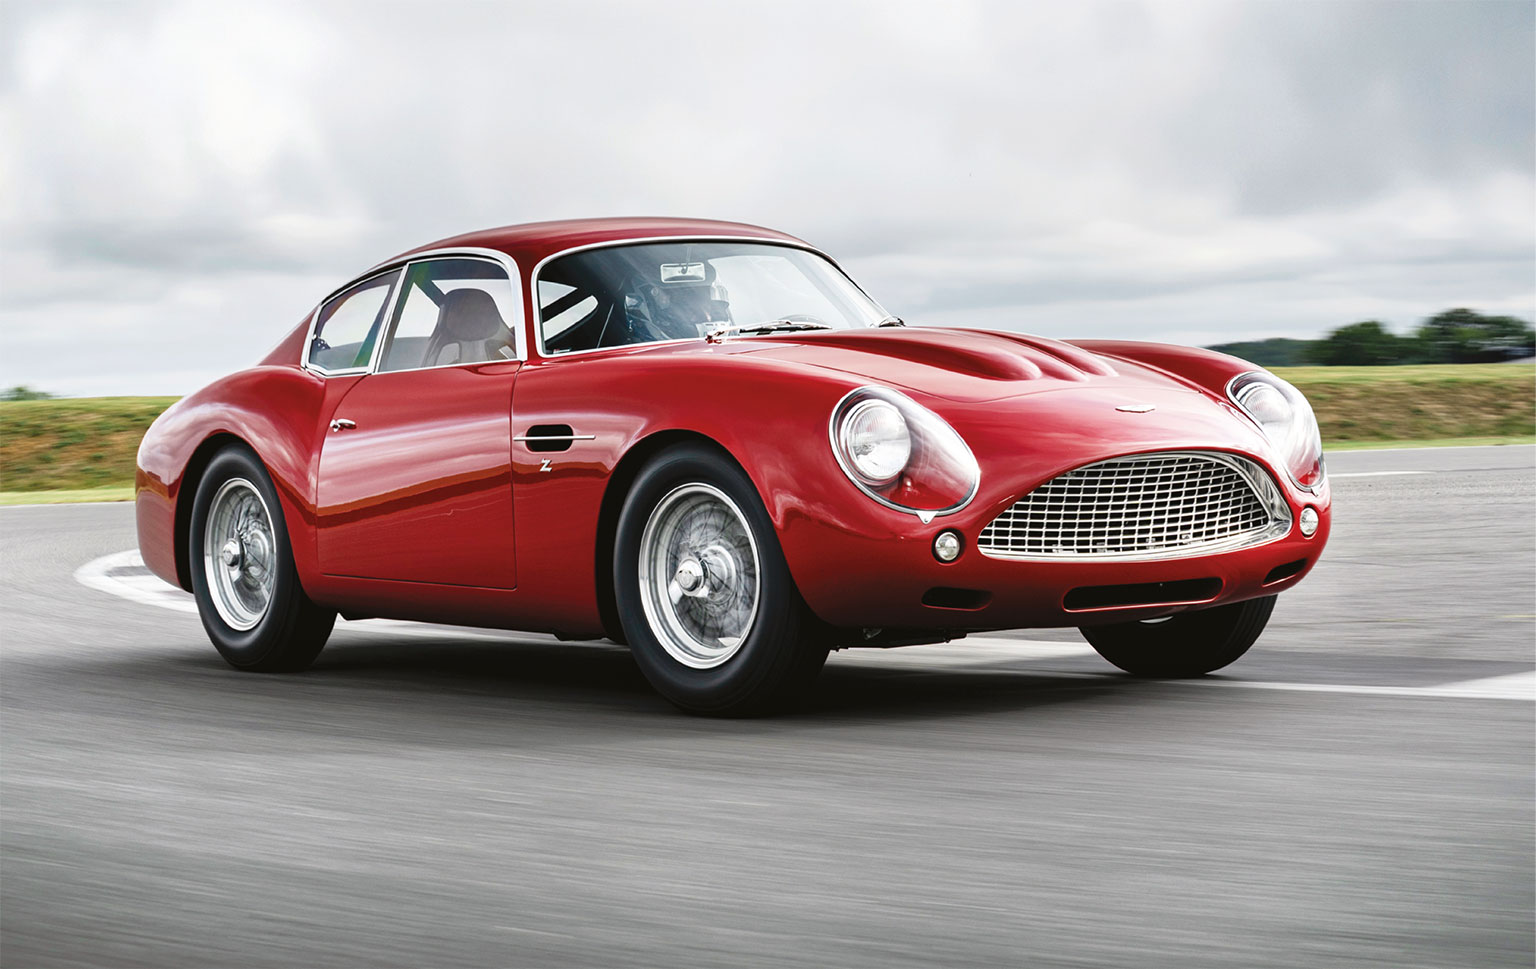 Poetry in motion: whether you agree with continuation cars or not, the Zagato is stunning